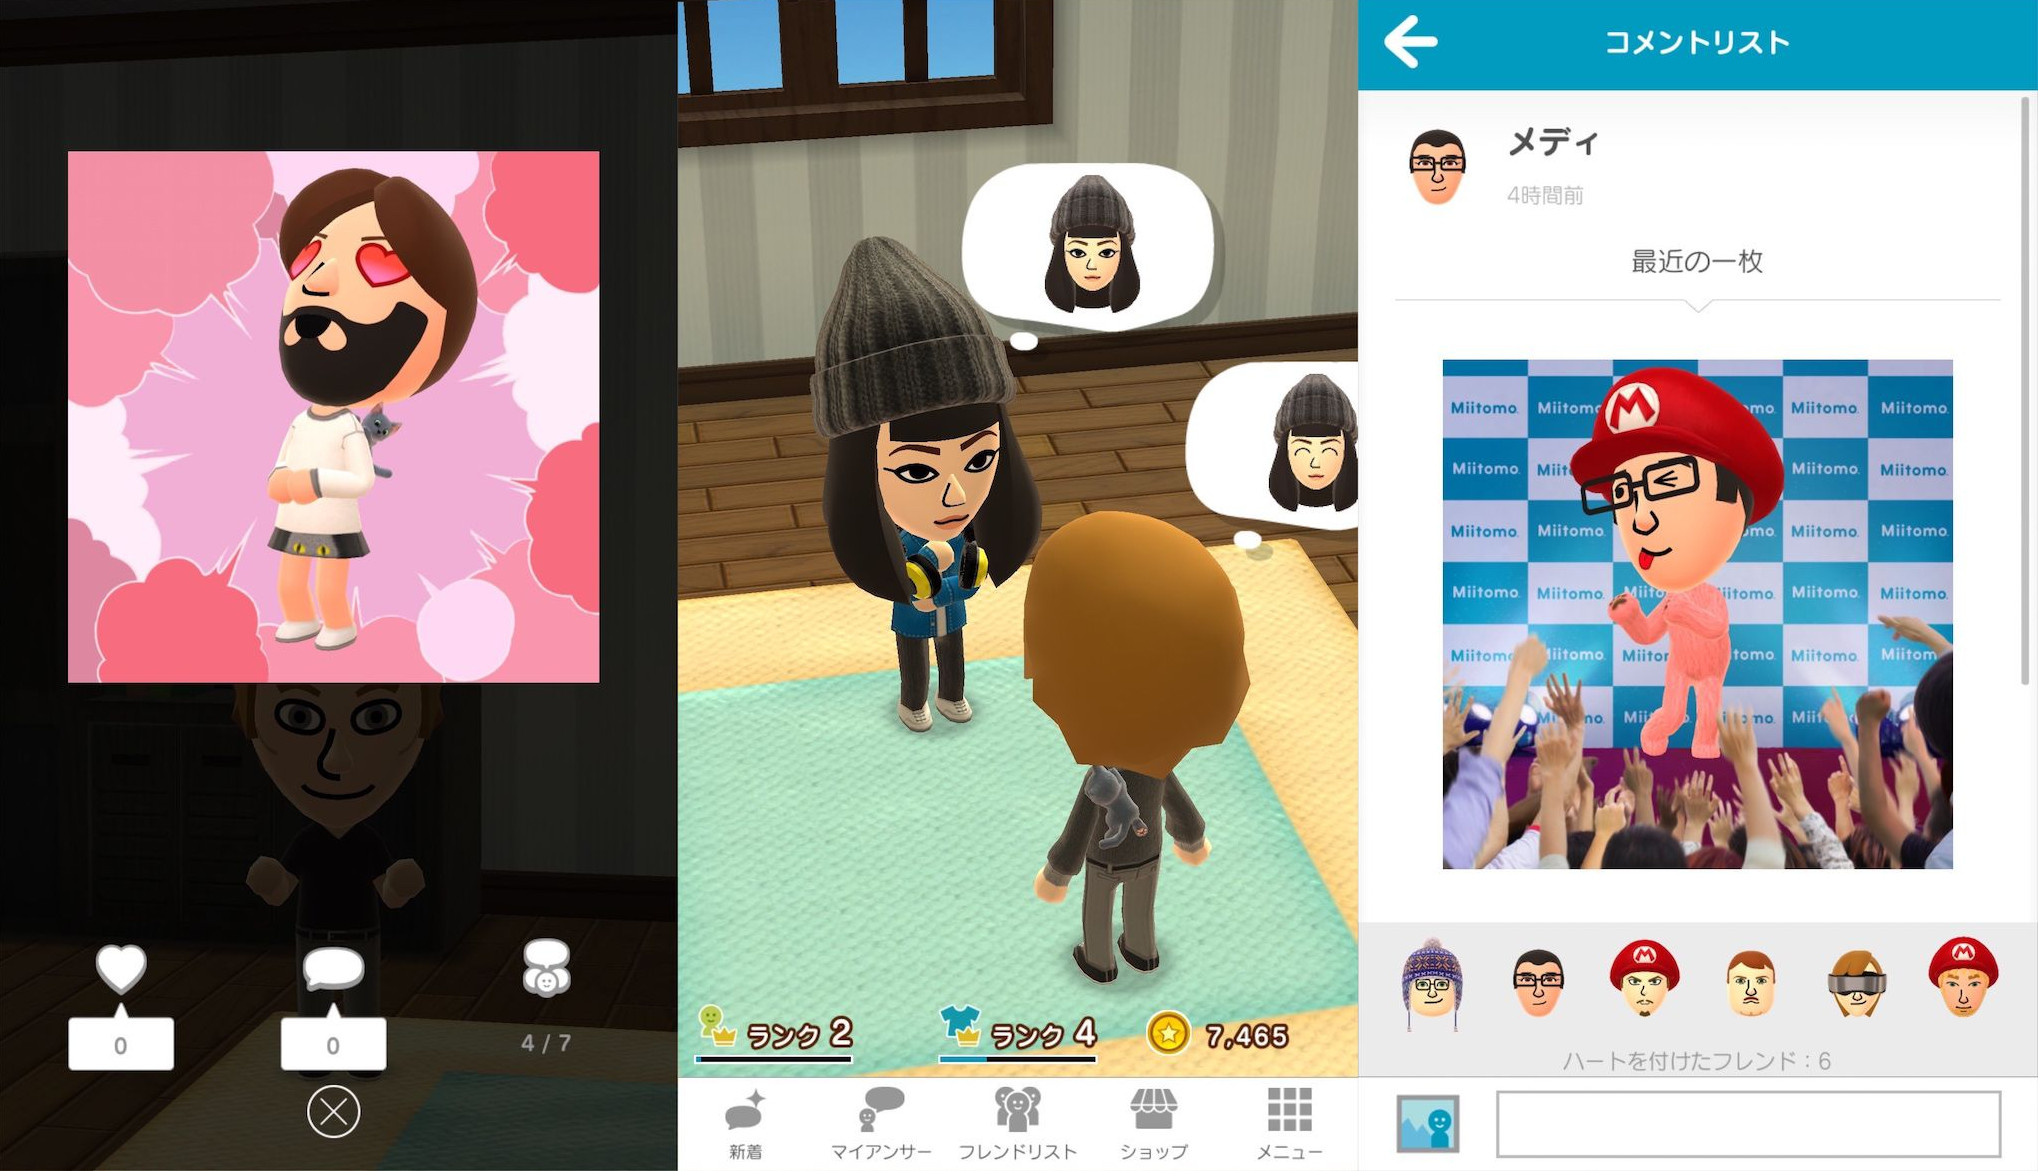 miitomo apk download